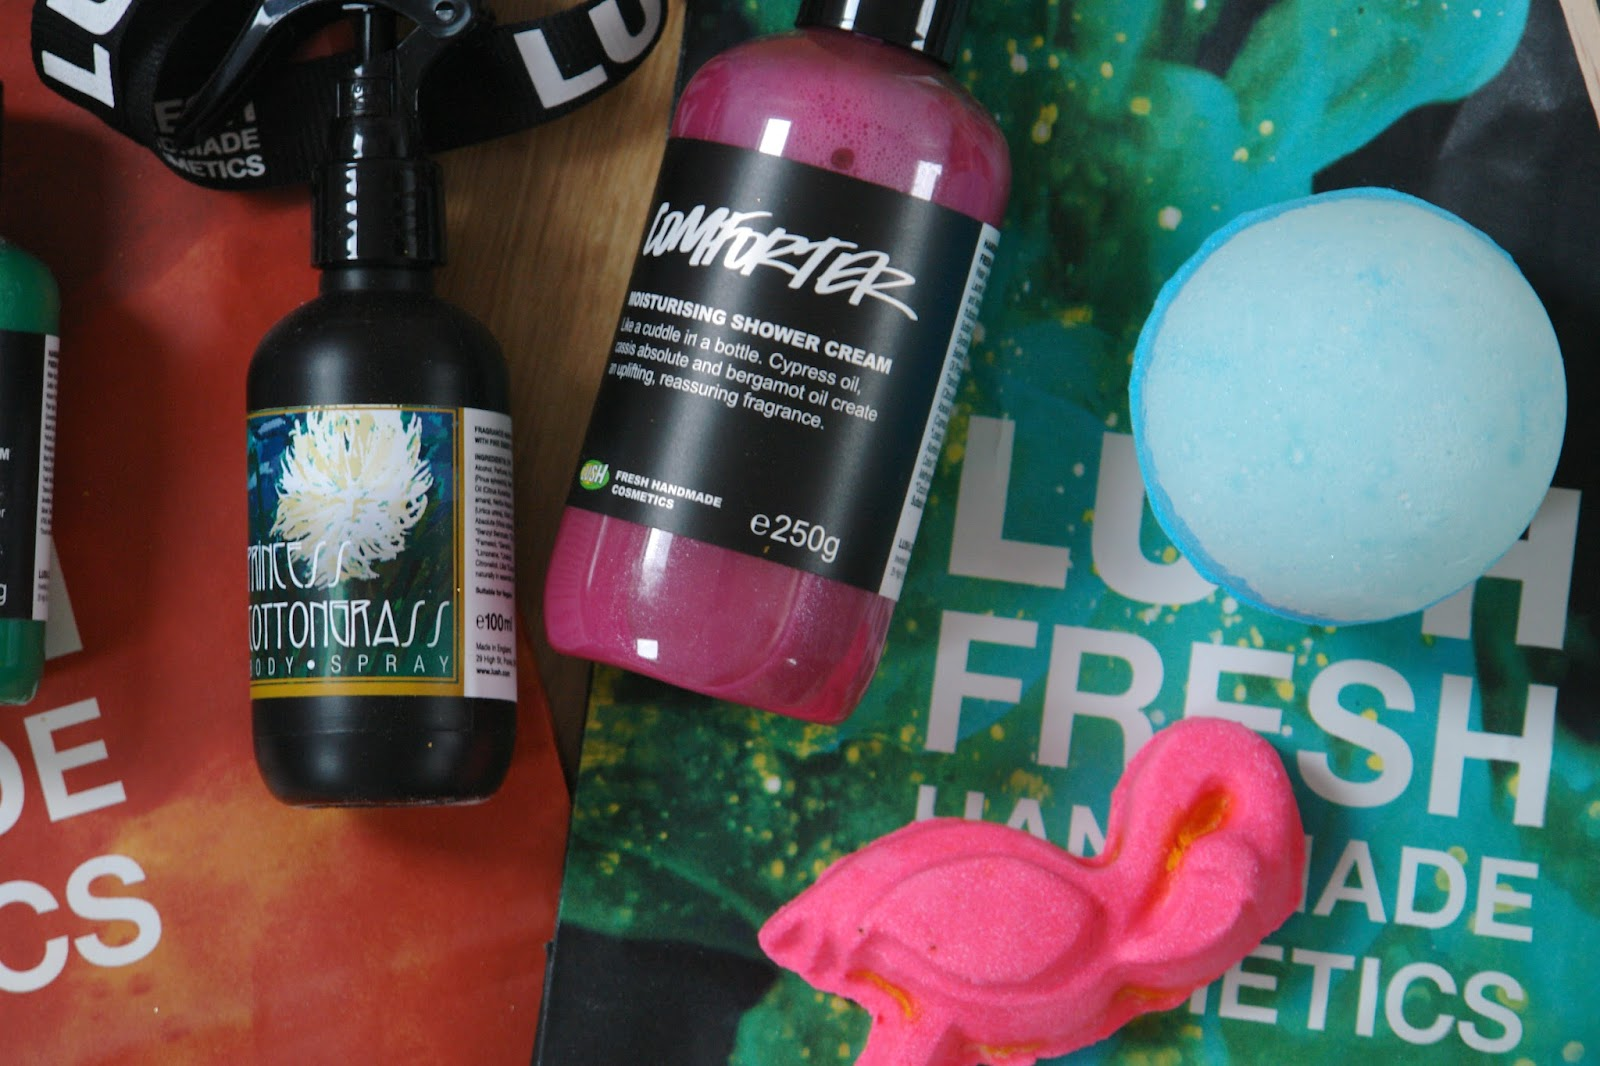 LUSH Oxford Street store exclusive products, Comforter Moisturising Shower Cream, Ginger Buttercup, Windmills, Little Dragons, Lotus Flowers, Frozen, Milk Bottles, Sticky Banana, LUSH, Damaged hot oil treatment, Eye Jewels, beauty, blogger, UK blog, LUSH eye jeweles